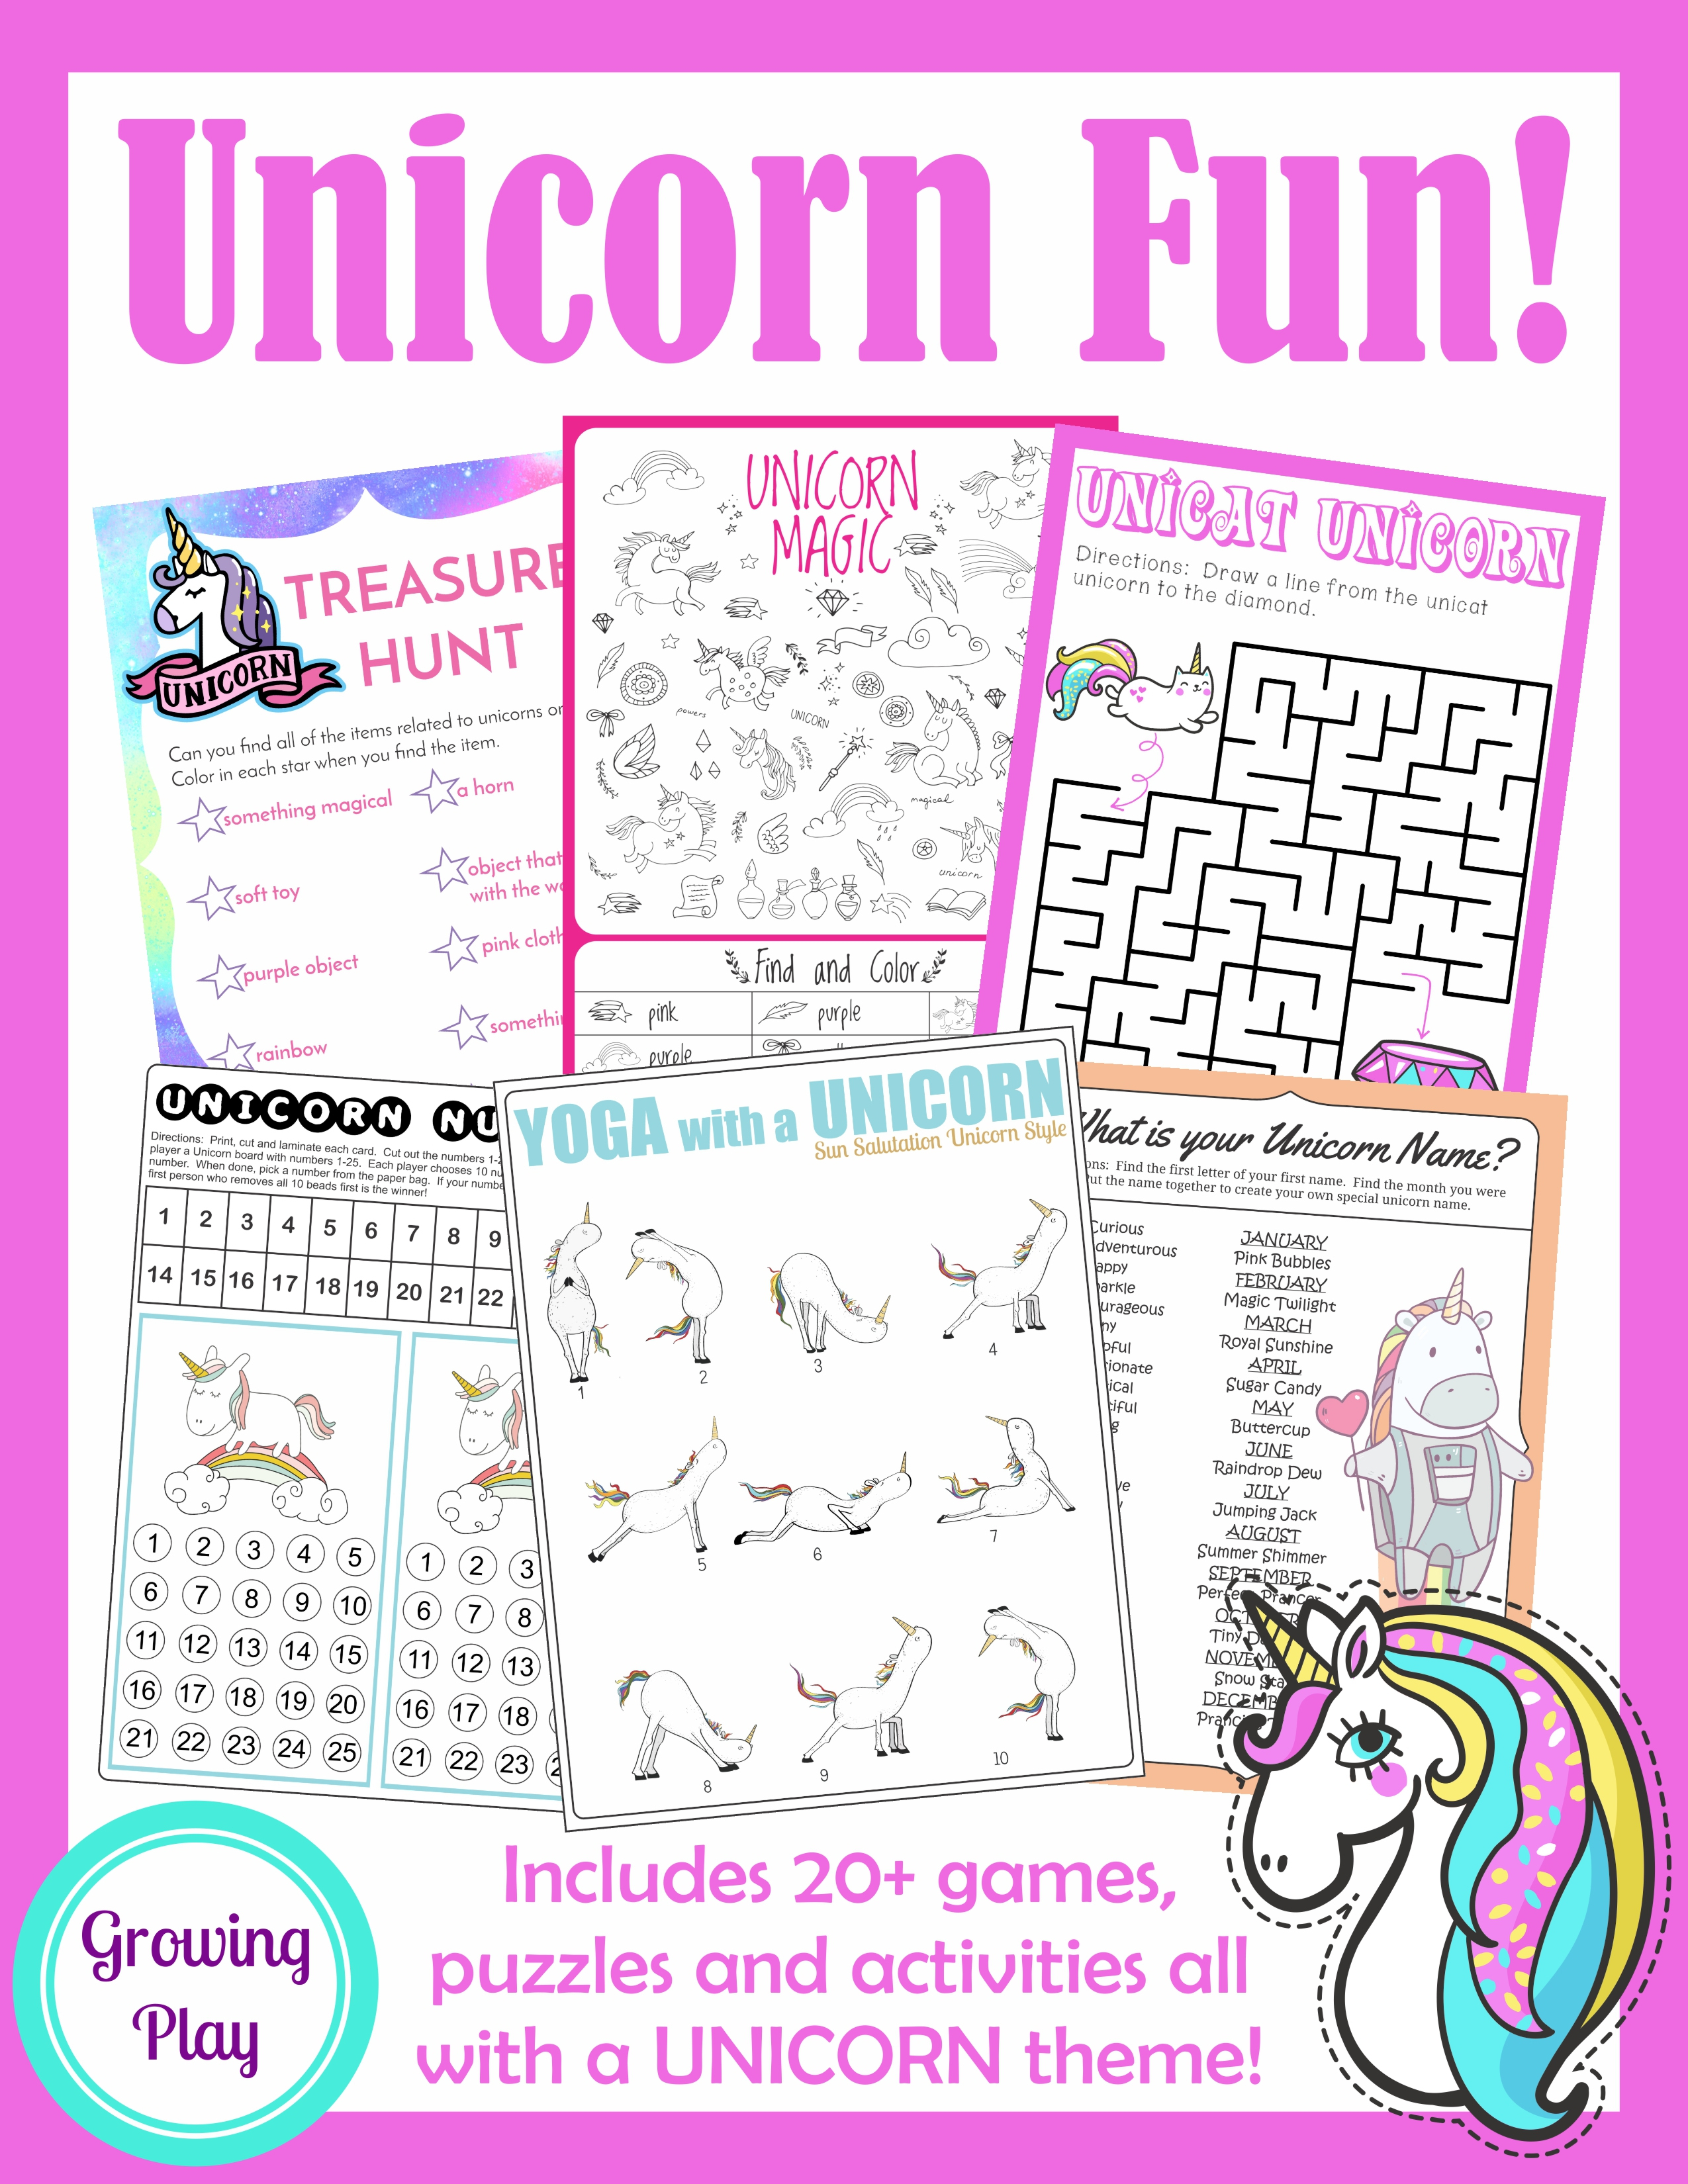 Unicorn Birthday Games Activities Puzzles - Growing Play - Printable Puzzle Packet